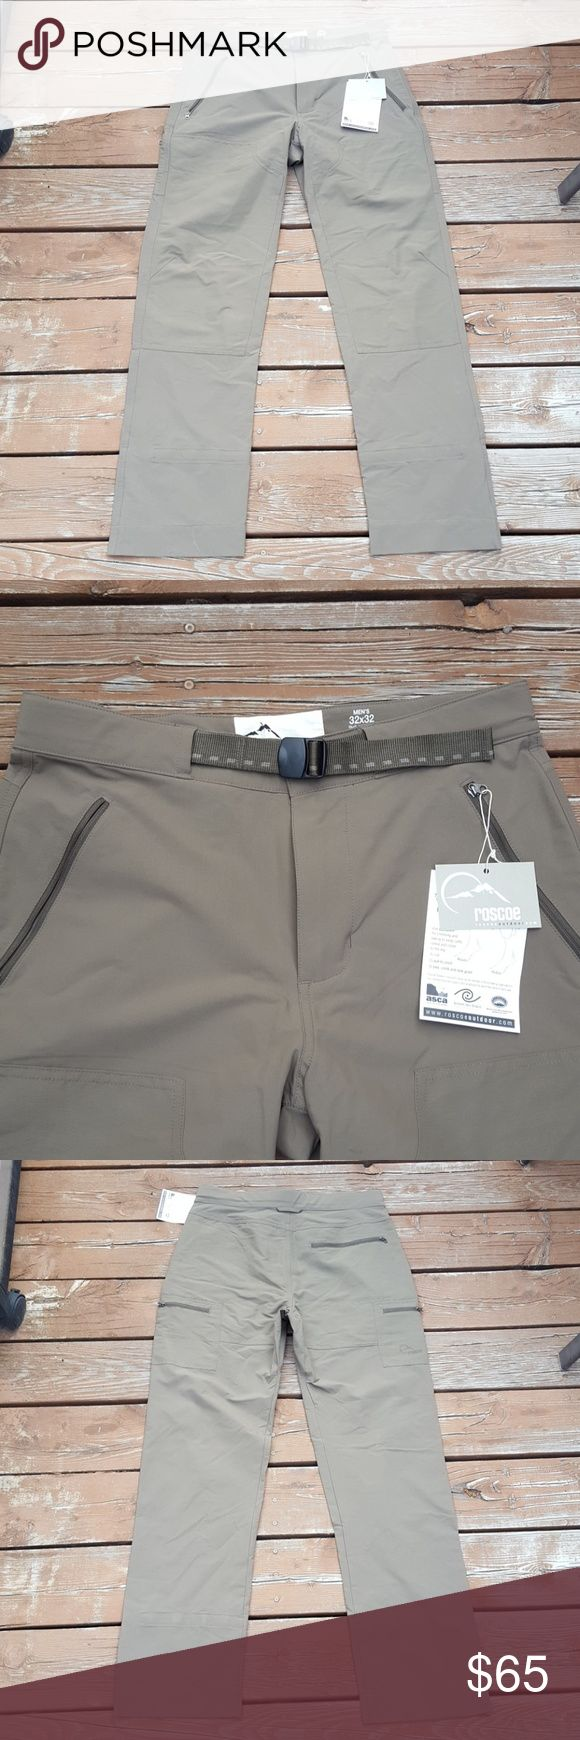 Men's Roscoe Washakie Hiking Pants Men's Hiking Pants  Roscoe Washakie  Size 32x32 Brand New 2 Front Zipper Pockets 1 Side Zipper Pocket 1 Butt Zipper Pocket Reinforced Fabric on Knees & Thighs Adjustable Waist Band Color- Light Khaki Olive Inside Leg Straps for adjusting pant length UPF 50+ Roscoe Pants